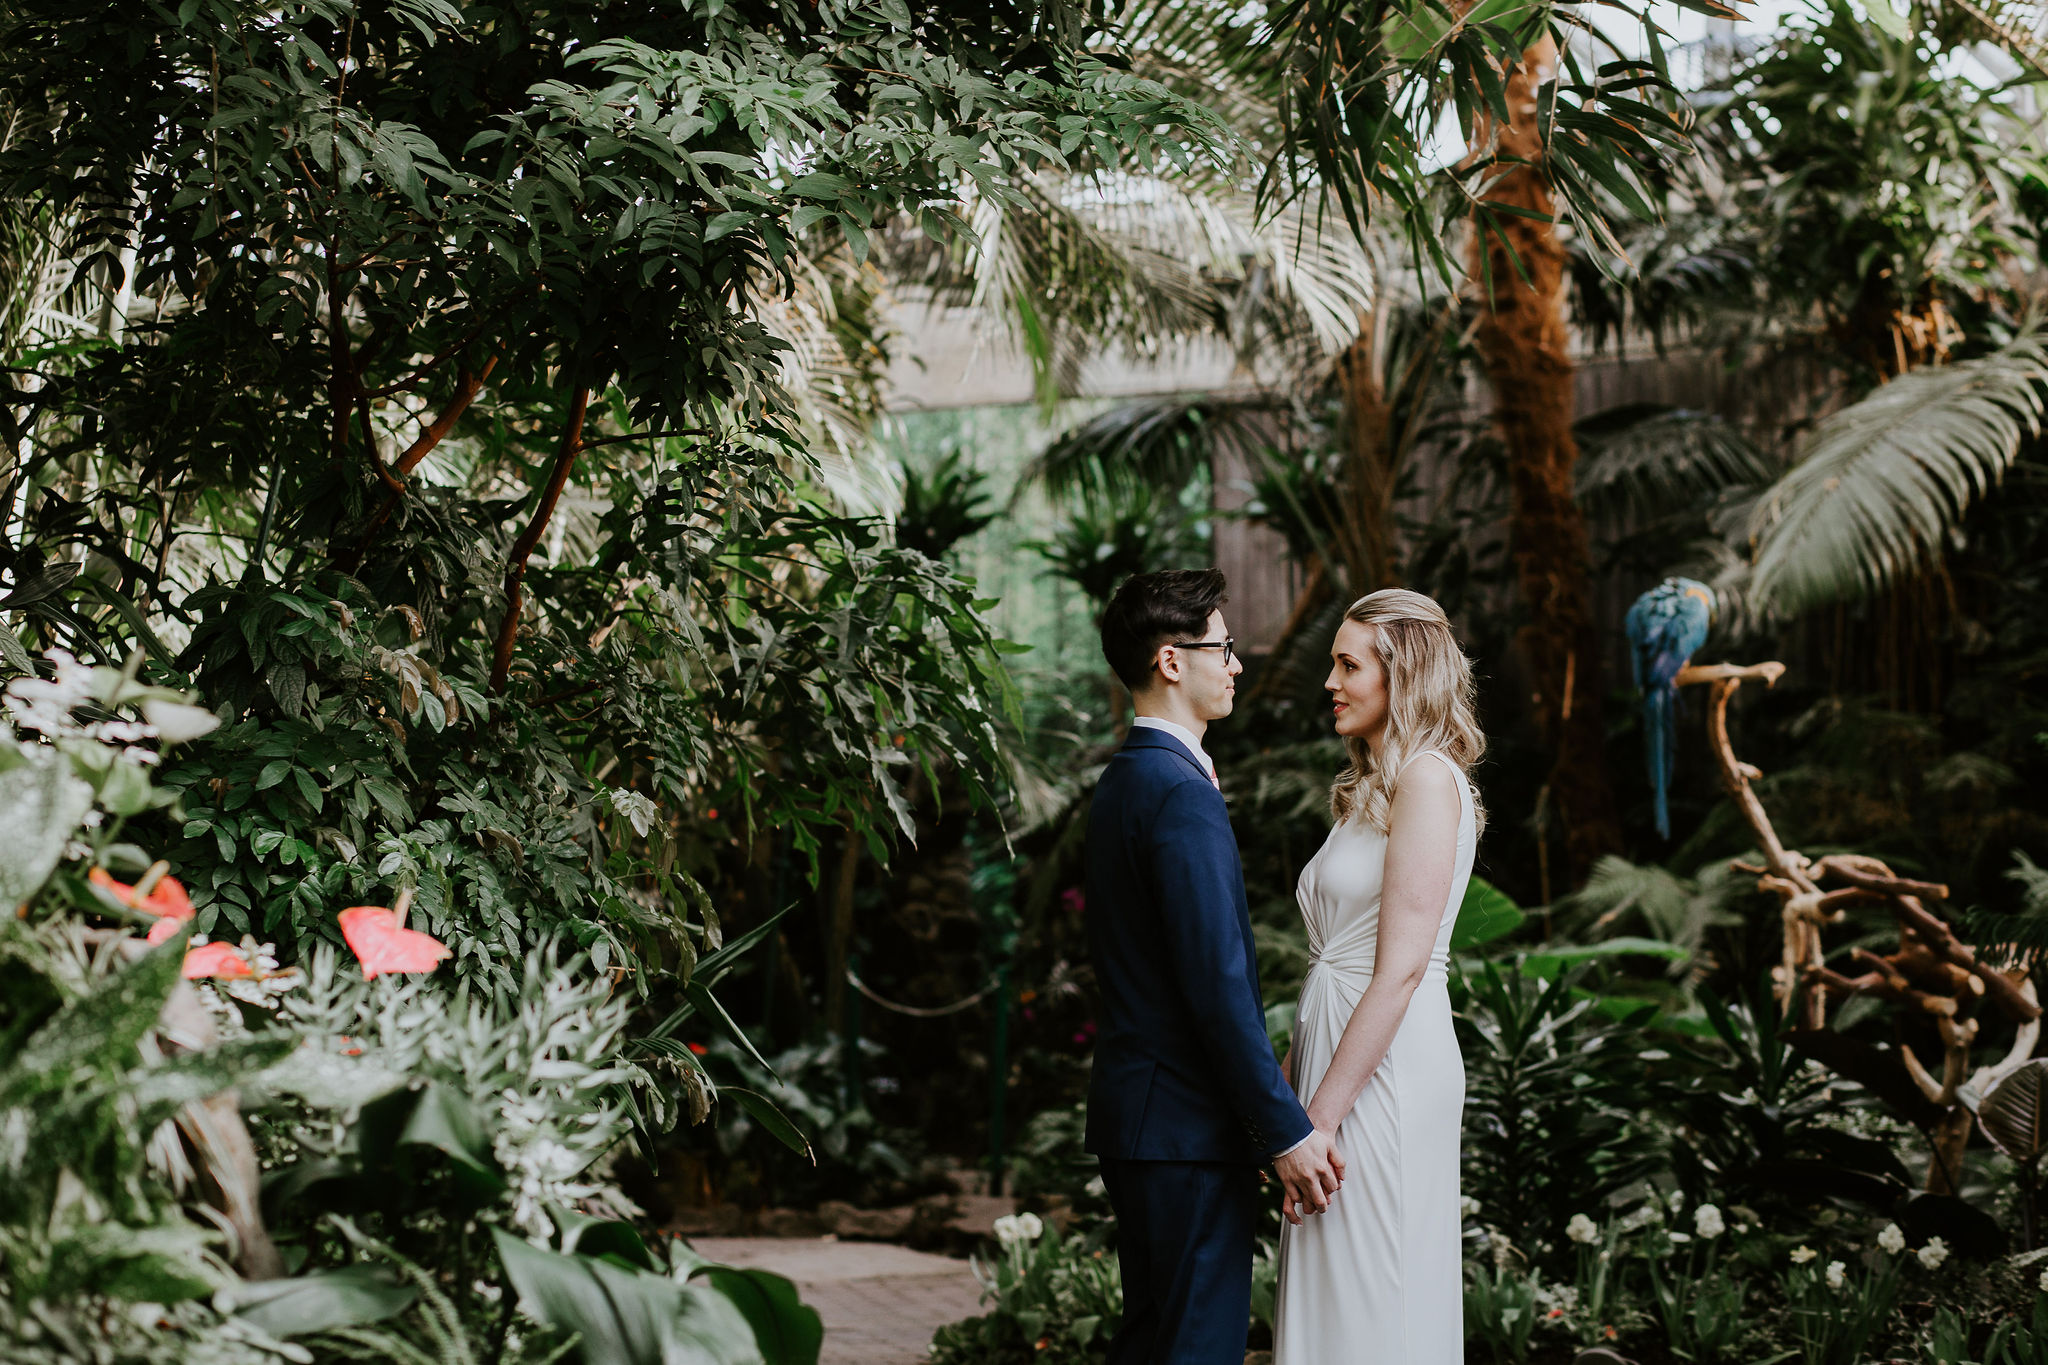 Vancouver elopement at Bloedel Conservatory